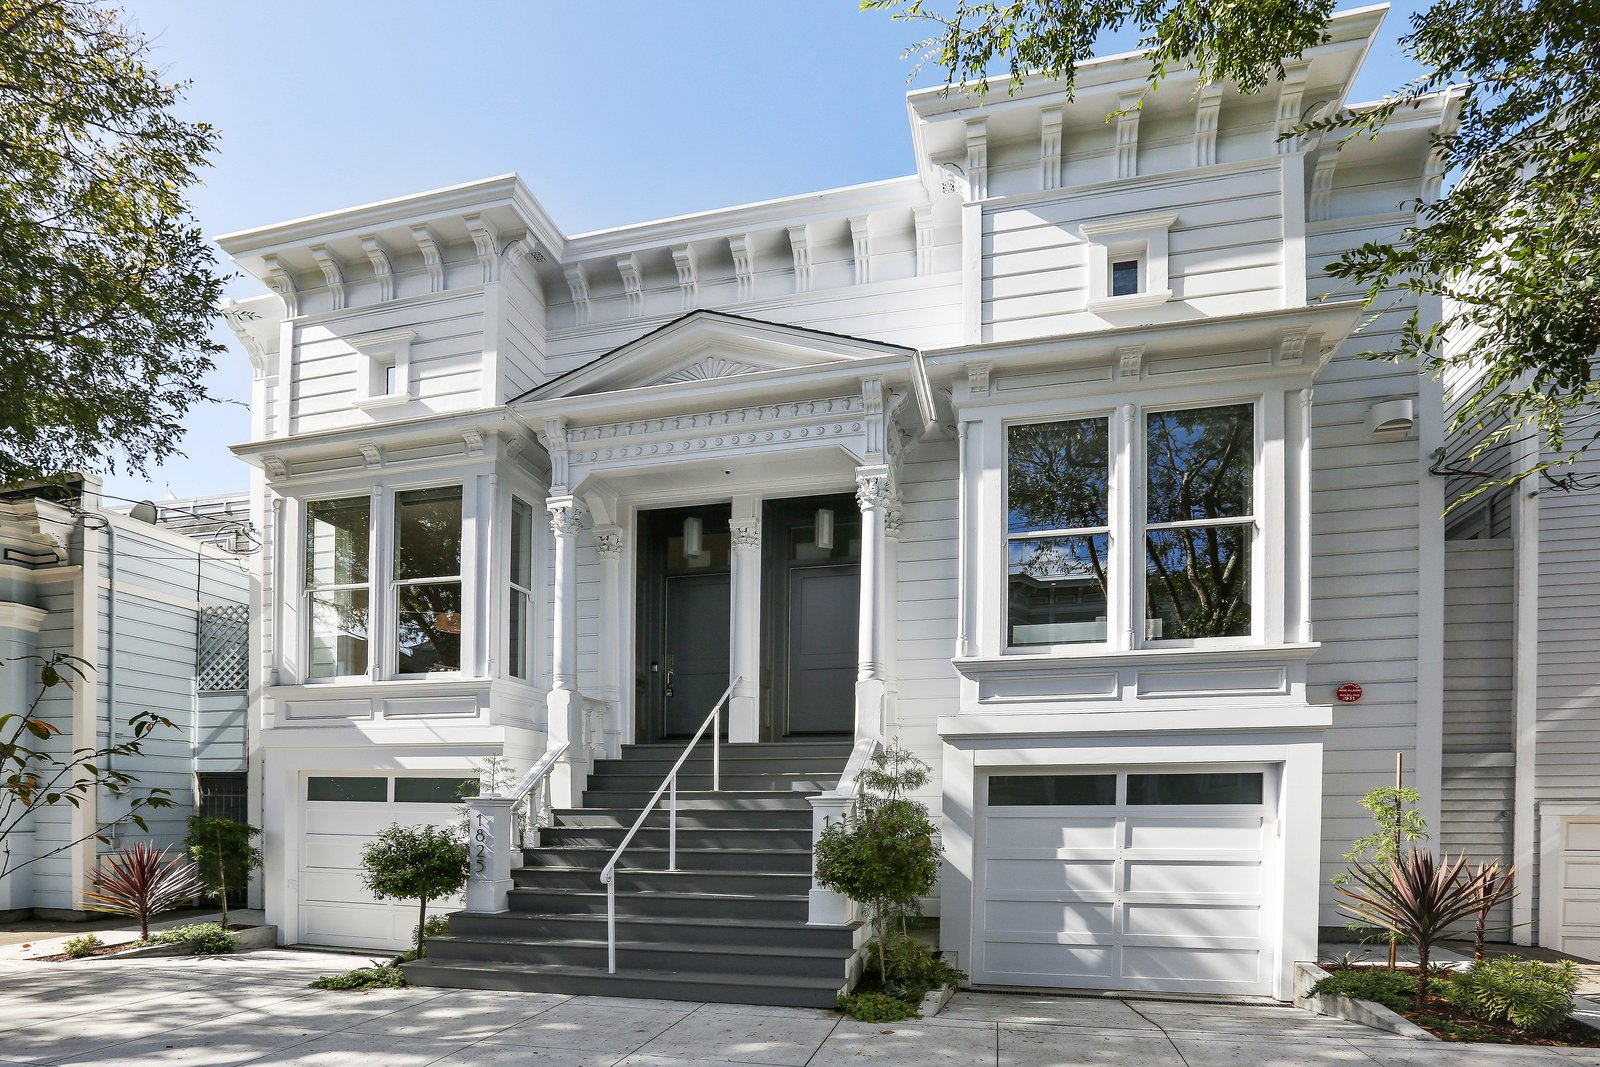 Front facade  Lower Pacific Heights by patrick perez/designpad architecture